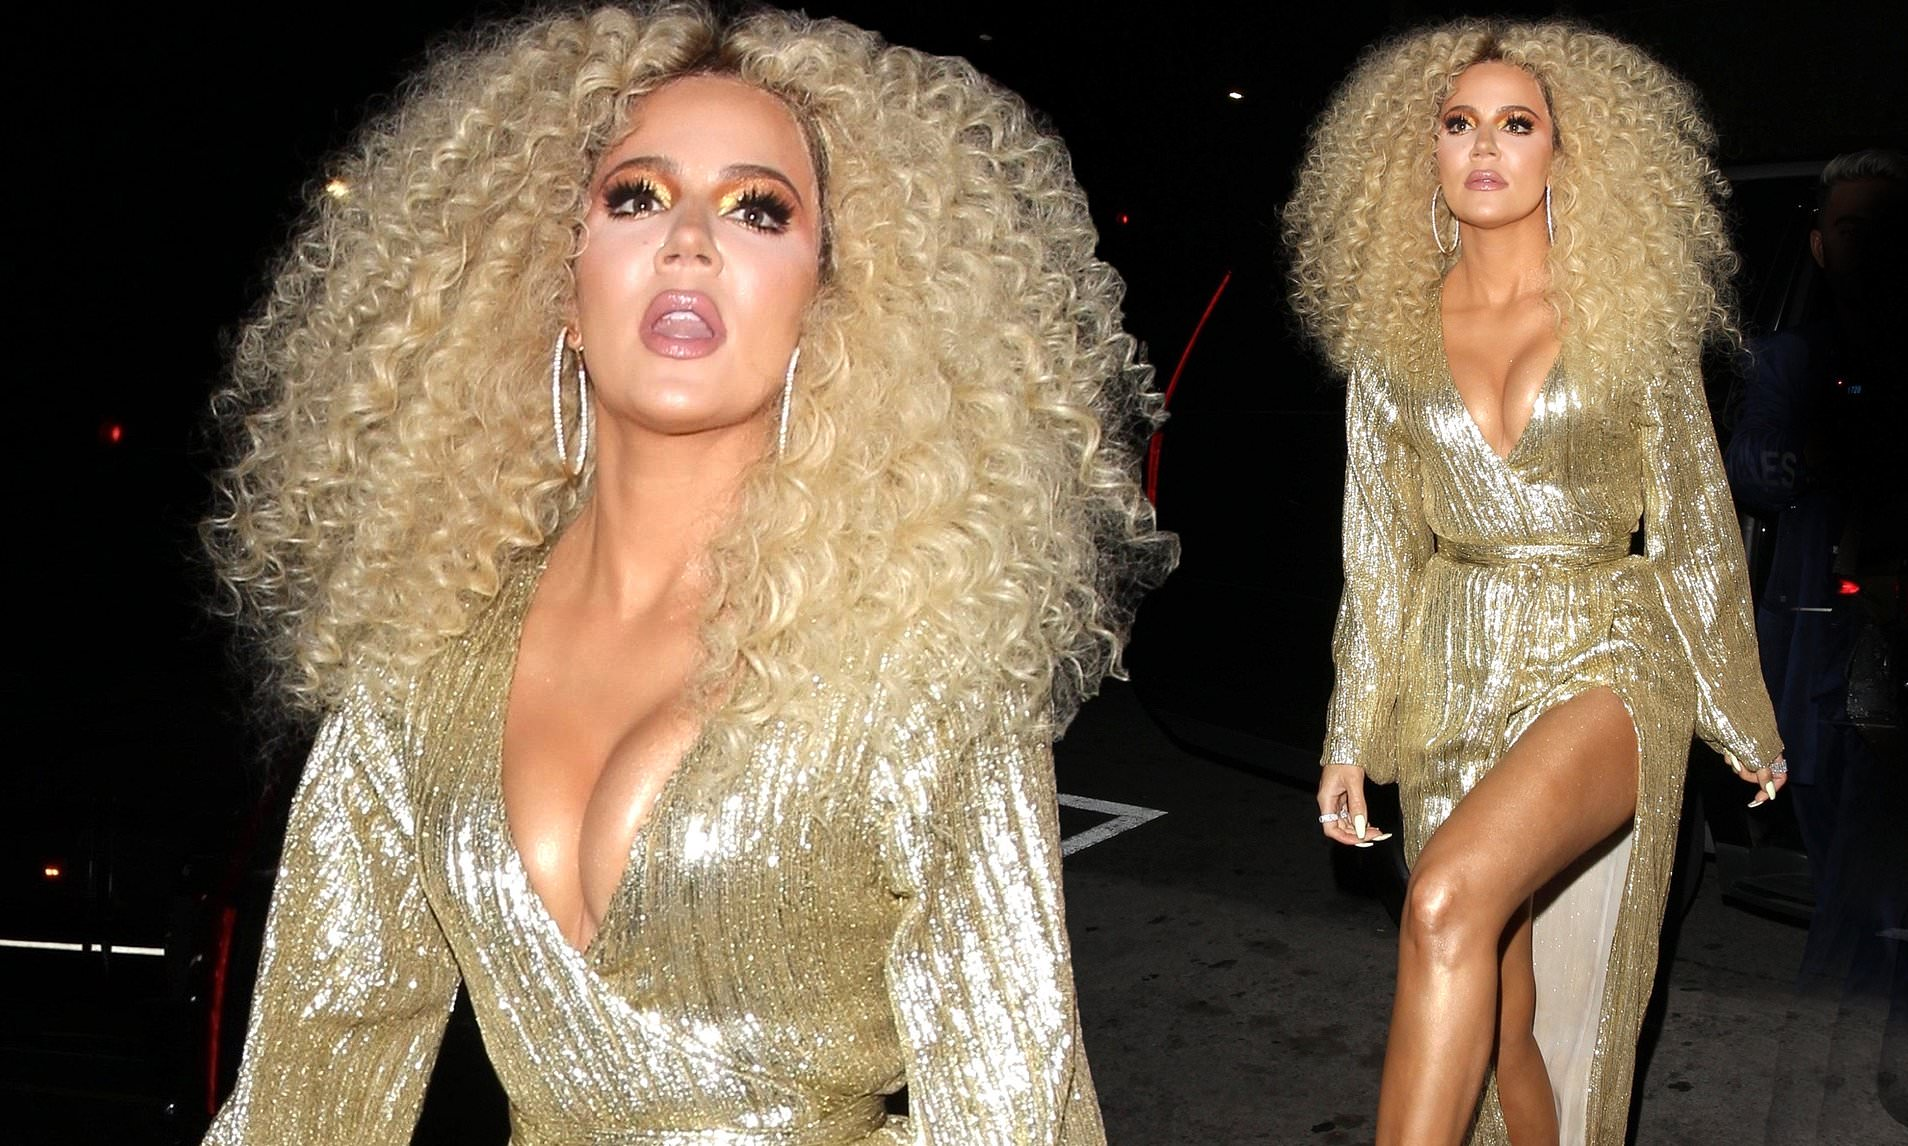 Khloe Kardashian is Dragged for Diana Ross-Inspired Look